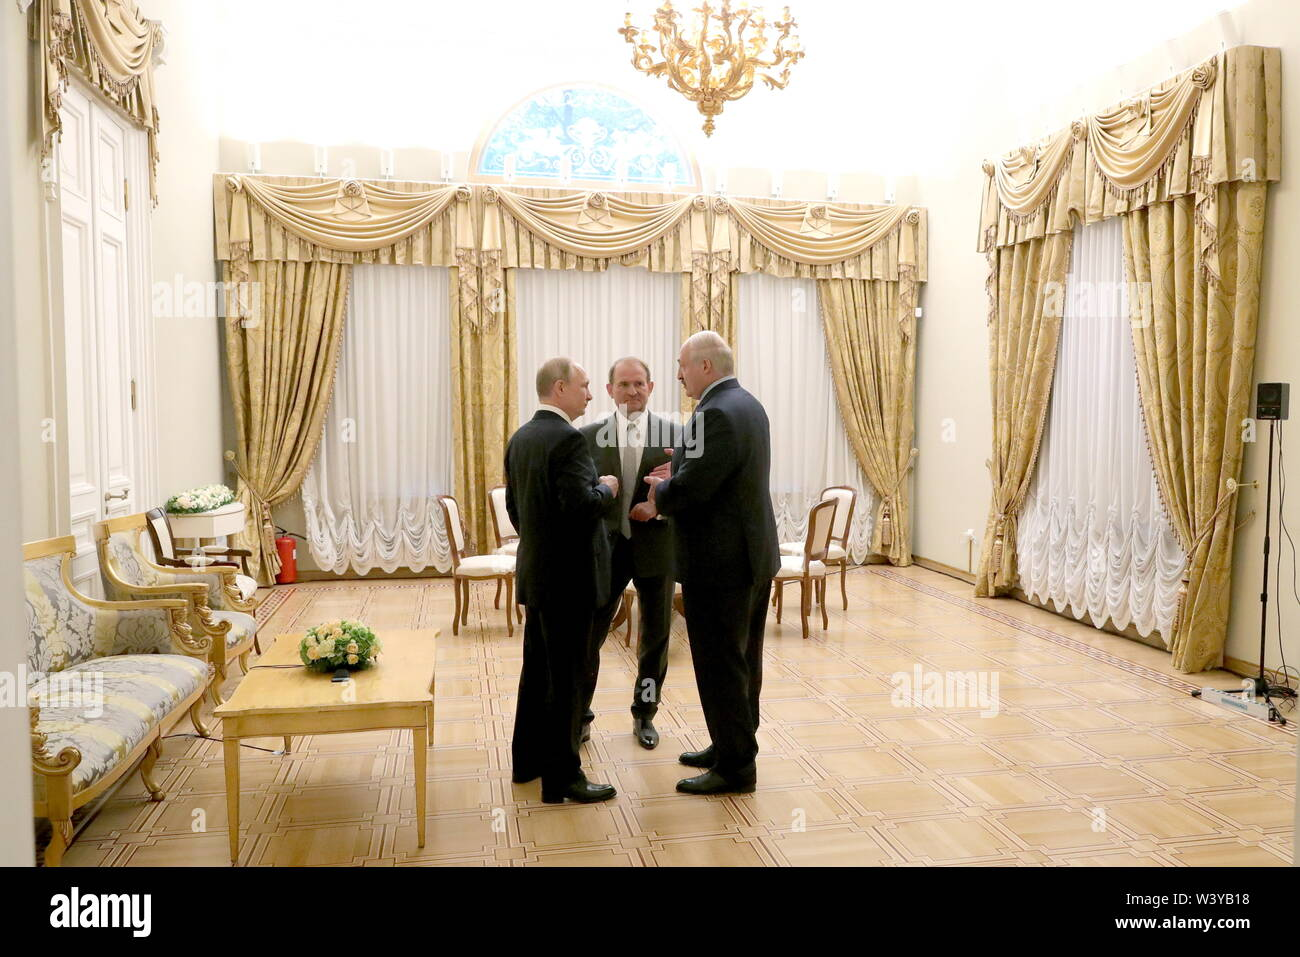 St Petersburg, Russia. 18th July, 2019. ST PETERSBURG, RUSSIA - JULY 18, 2019: Russia's President Vladimir Putin, Viktor Medvedchuk, Chairman of the Ukrainian Opposition Platform - For Life, and Belarus' President Alexander Lukashenko during a meeting at the Tauride Palace. Mikhail Klimentyev/Russian Presidential Press and Information Office/TASS Credit: ITAR-TASS News Agency/Alamy Live News - Stock Image